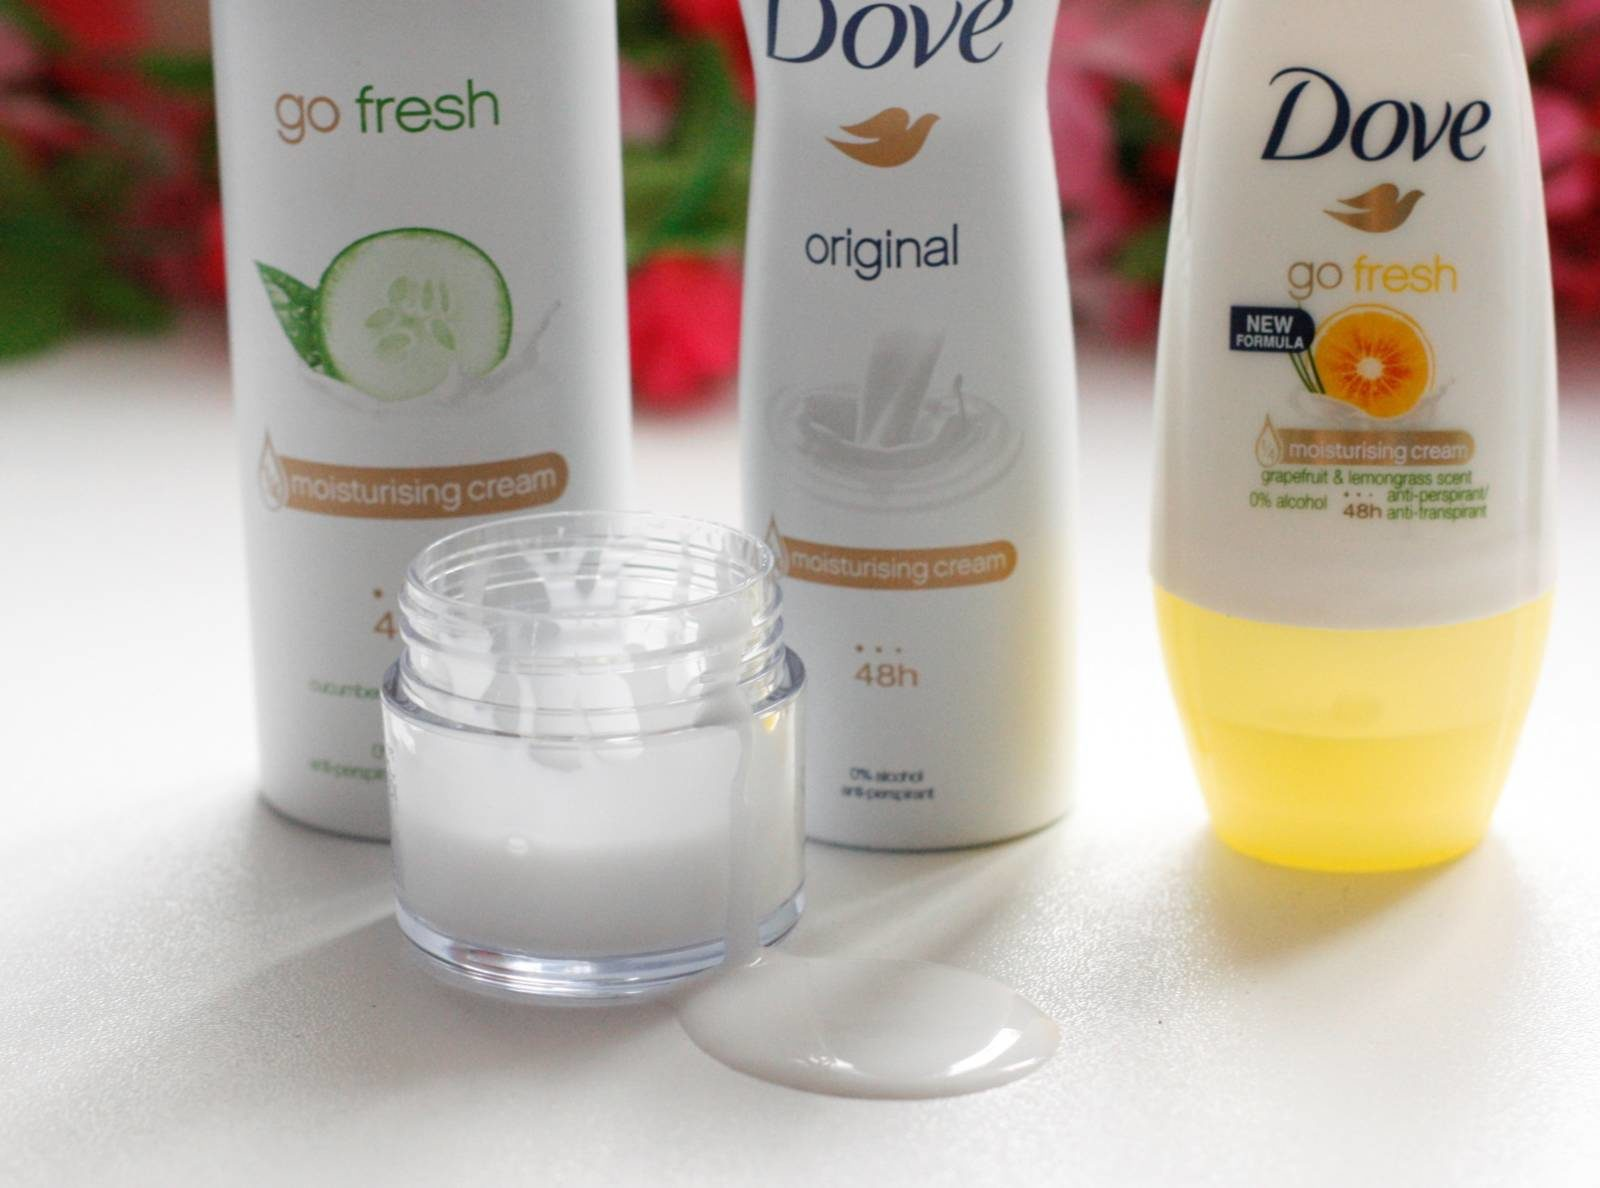 Dove Anti-Perspirant Review